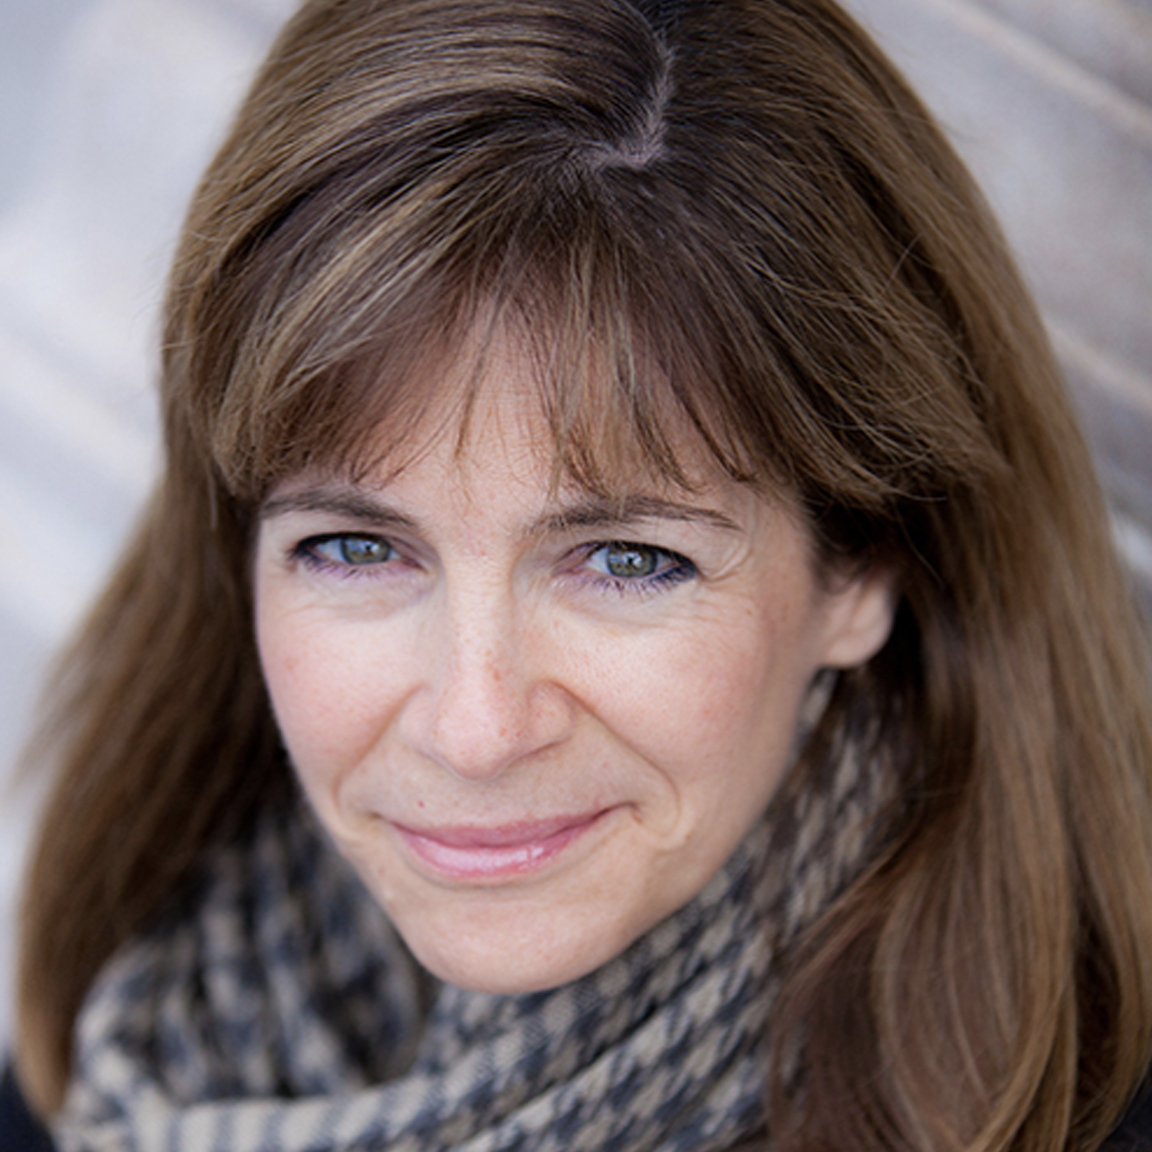 Fearfully and Wonderfully Made – An Introduction to the Enneagram with Karen Johnson - October 7 - November 4   This coaching group focuses on increasing our self and other awareness through the Enneagram Personality Model. It explores our unique personality and the unique personalities of others as reflections of God's image. We will discuss the contributions and struggles of each personality type, the variety of intelligences, and how to cooperate with God's design as you grow personally, professionally and spiritually. Includes an online assessment.    Sign Up For Mondays 4:30-5:30pm Central Time